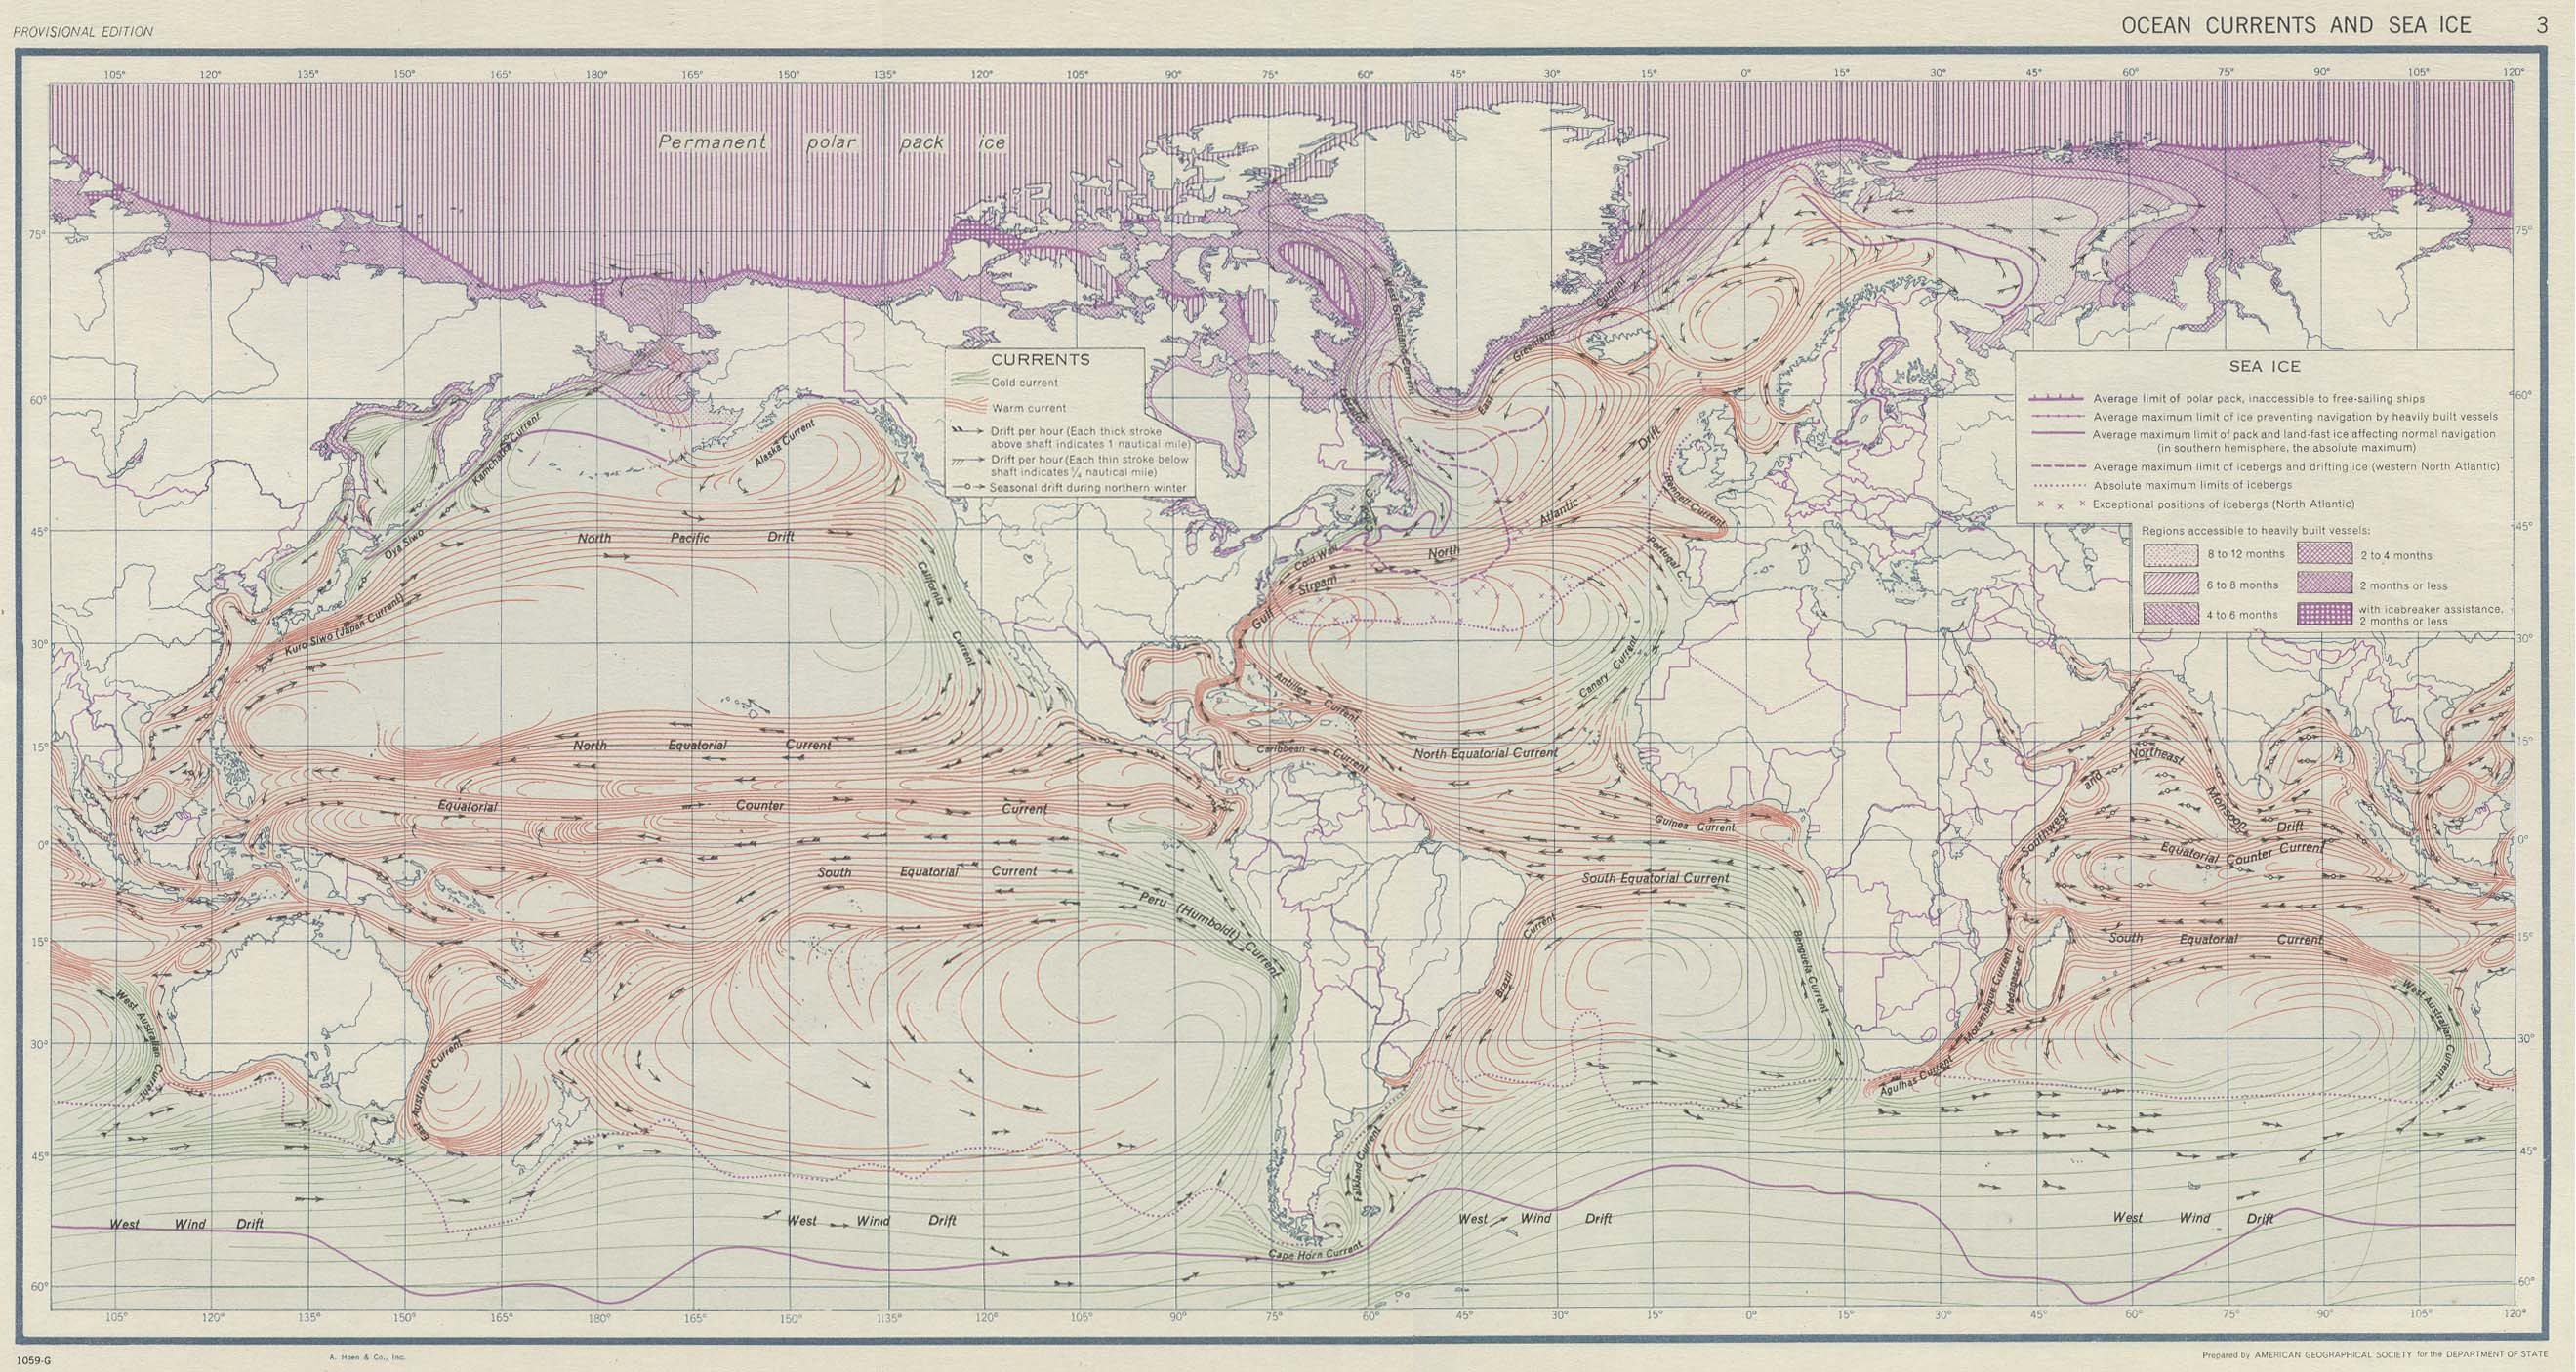 Ocean currents and sea ice 1943